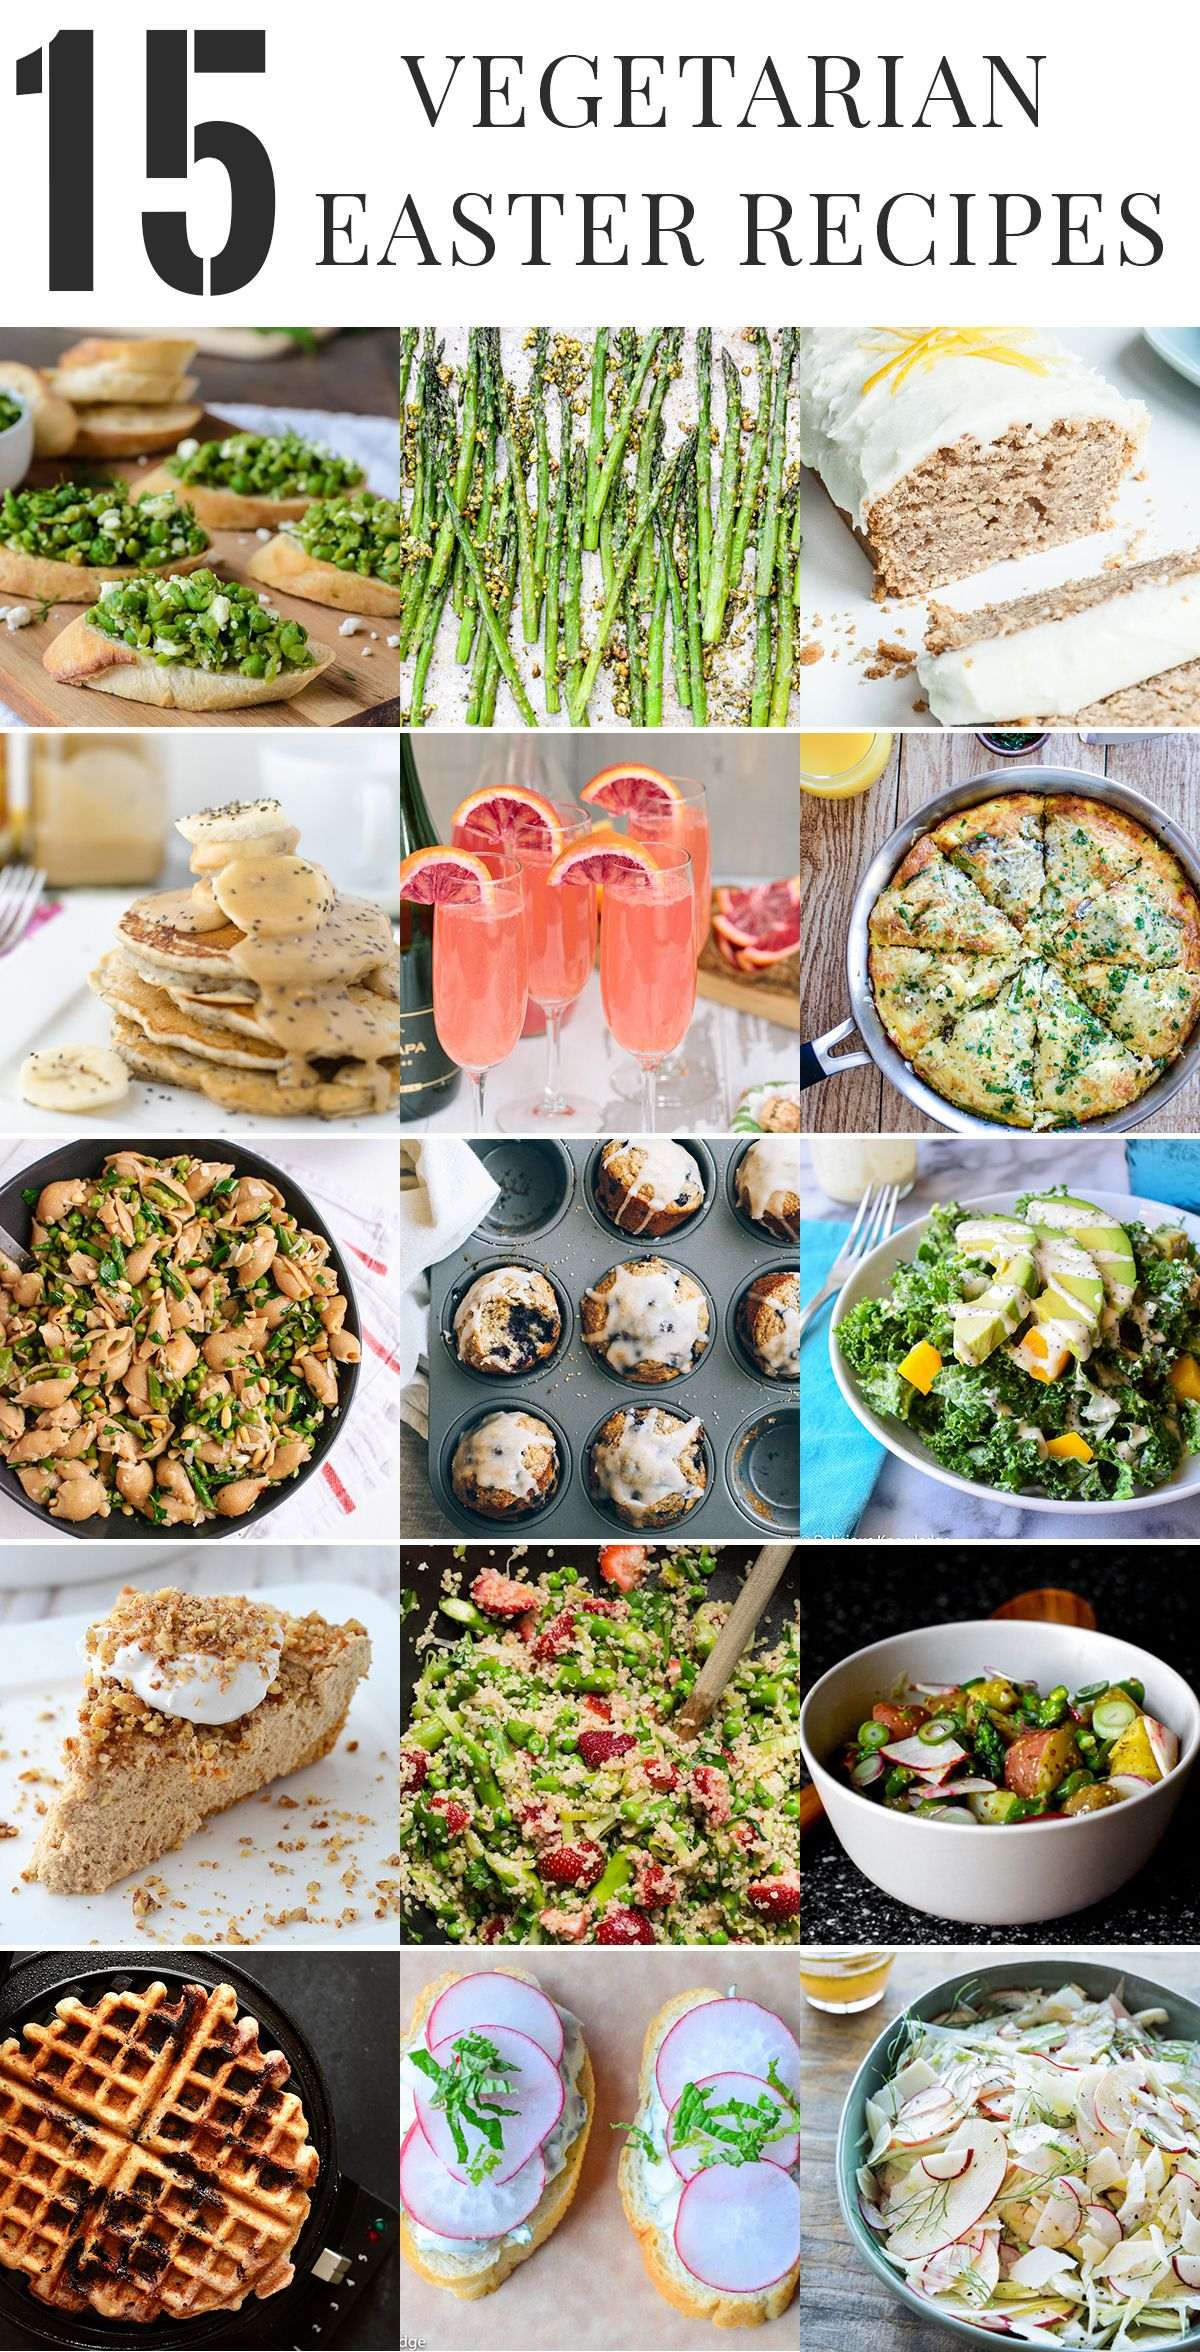 Healthy vegetarian easter recipes healthy vegetarian recipes healthy vegetarian easter recipes forumfinder Choice Image